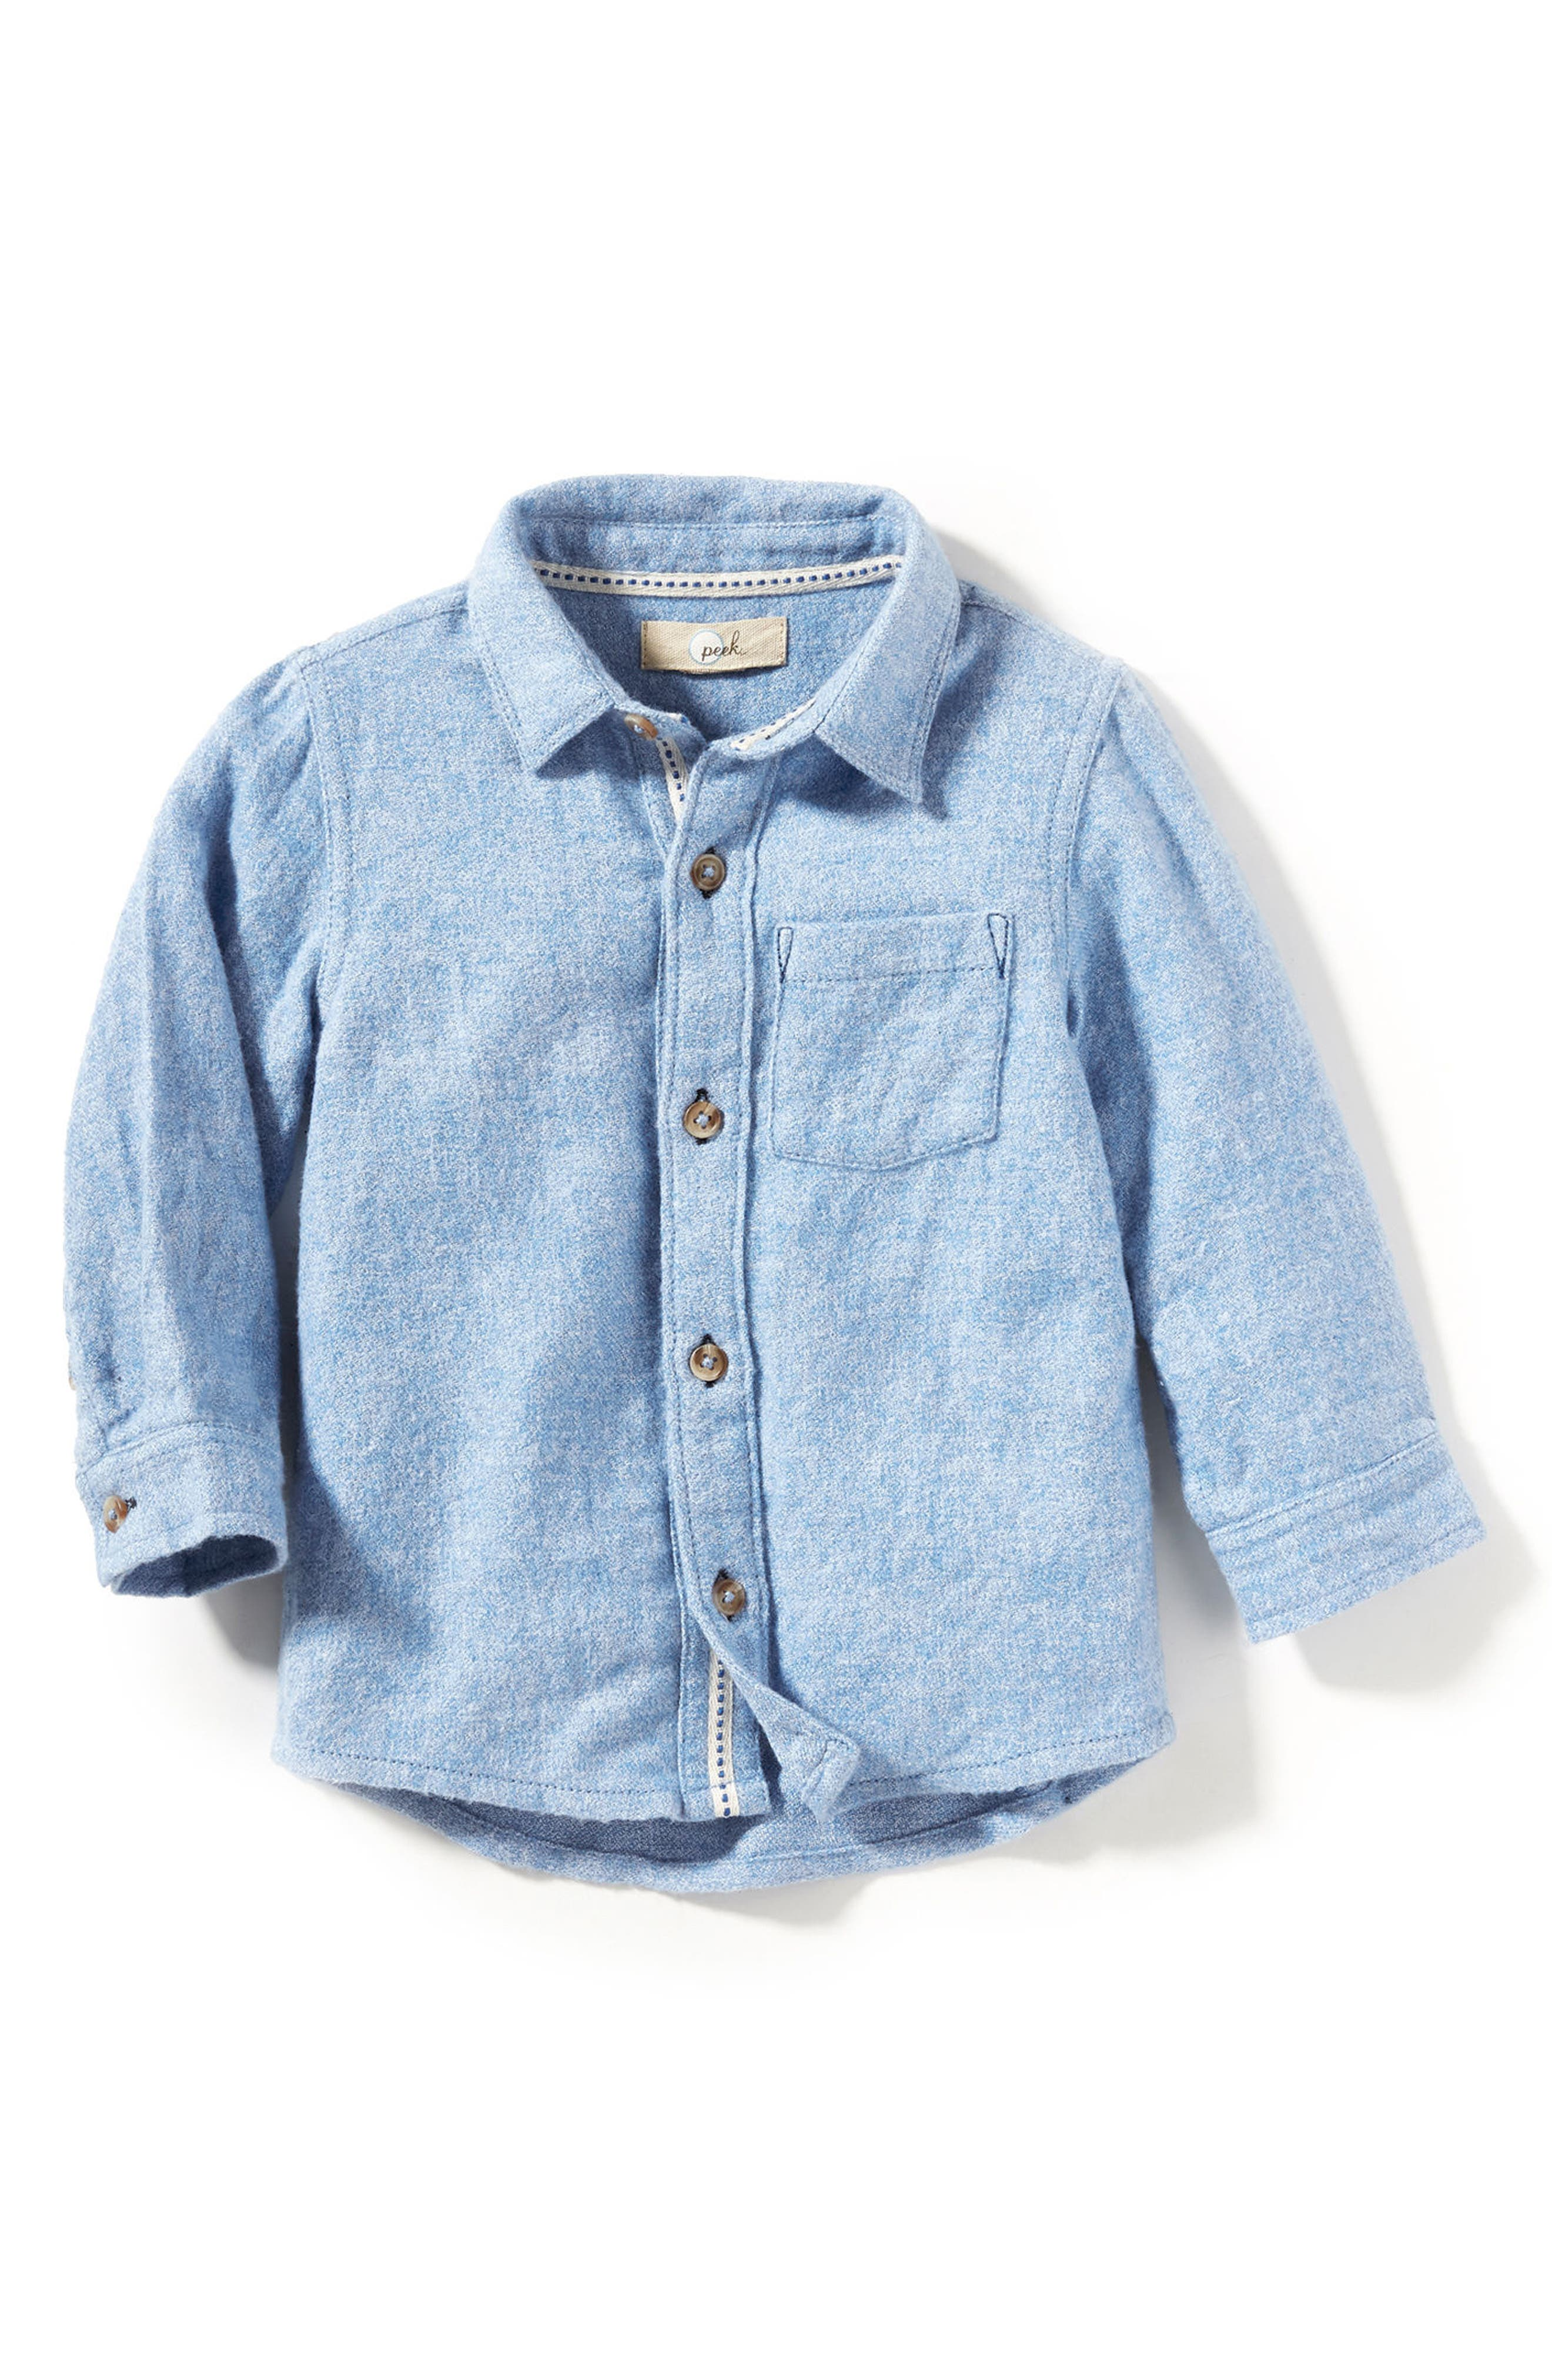 Peek James Woven Flannel Shirt (Baby Boys)